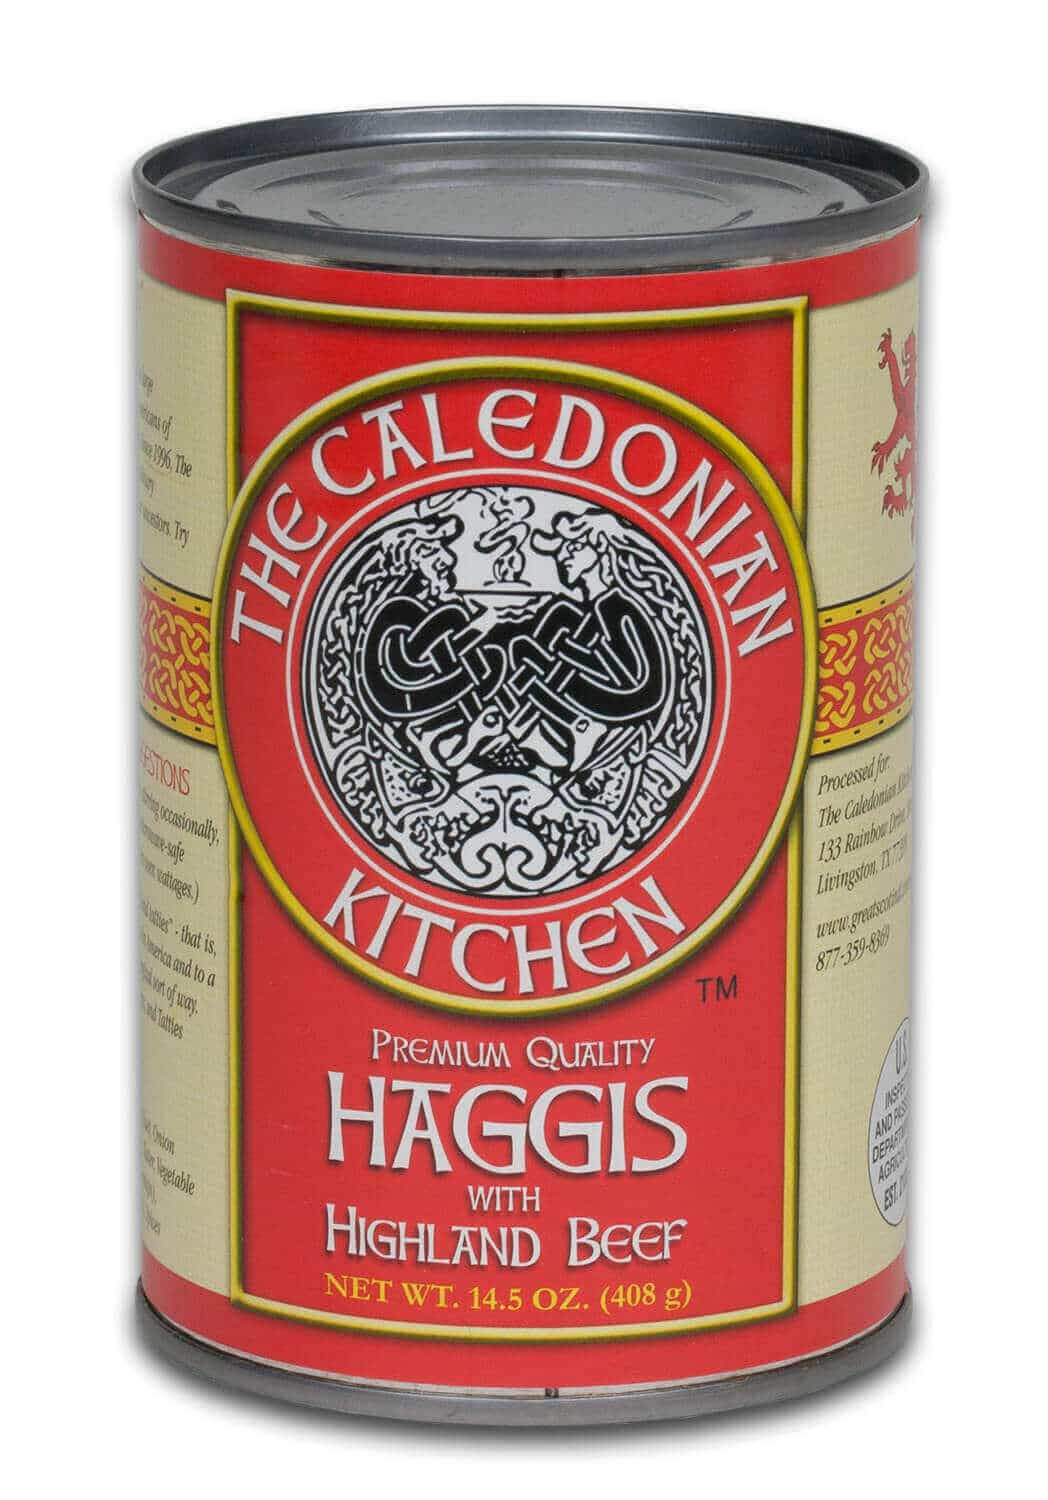 Highland Beef Haggis Case of 12 Cans